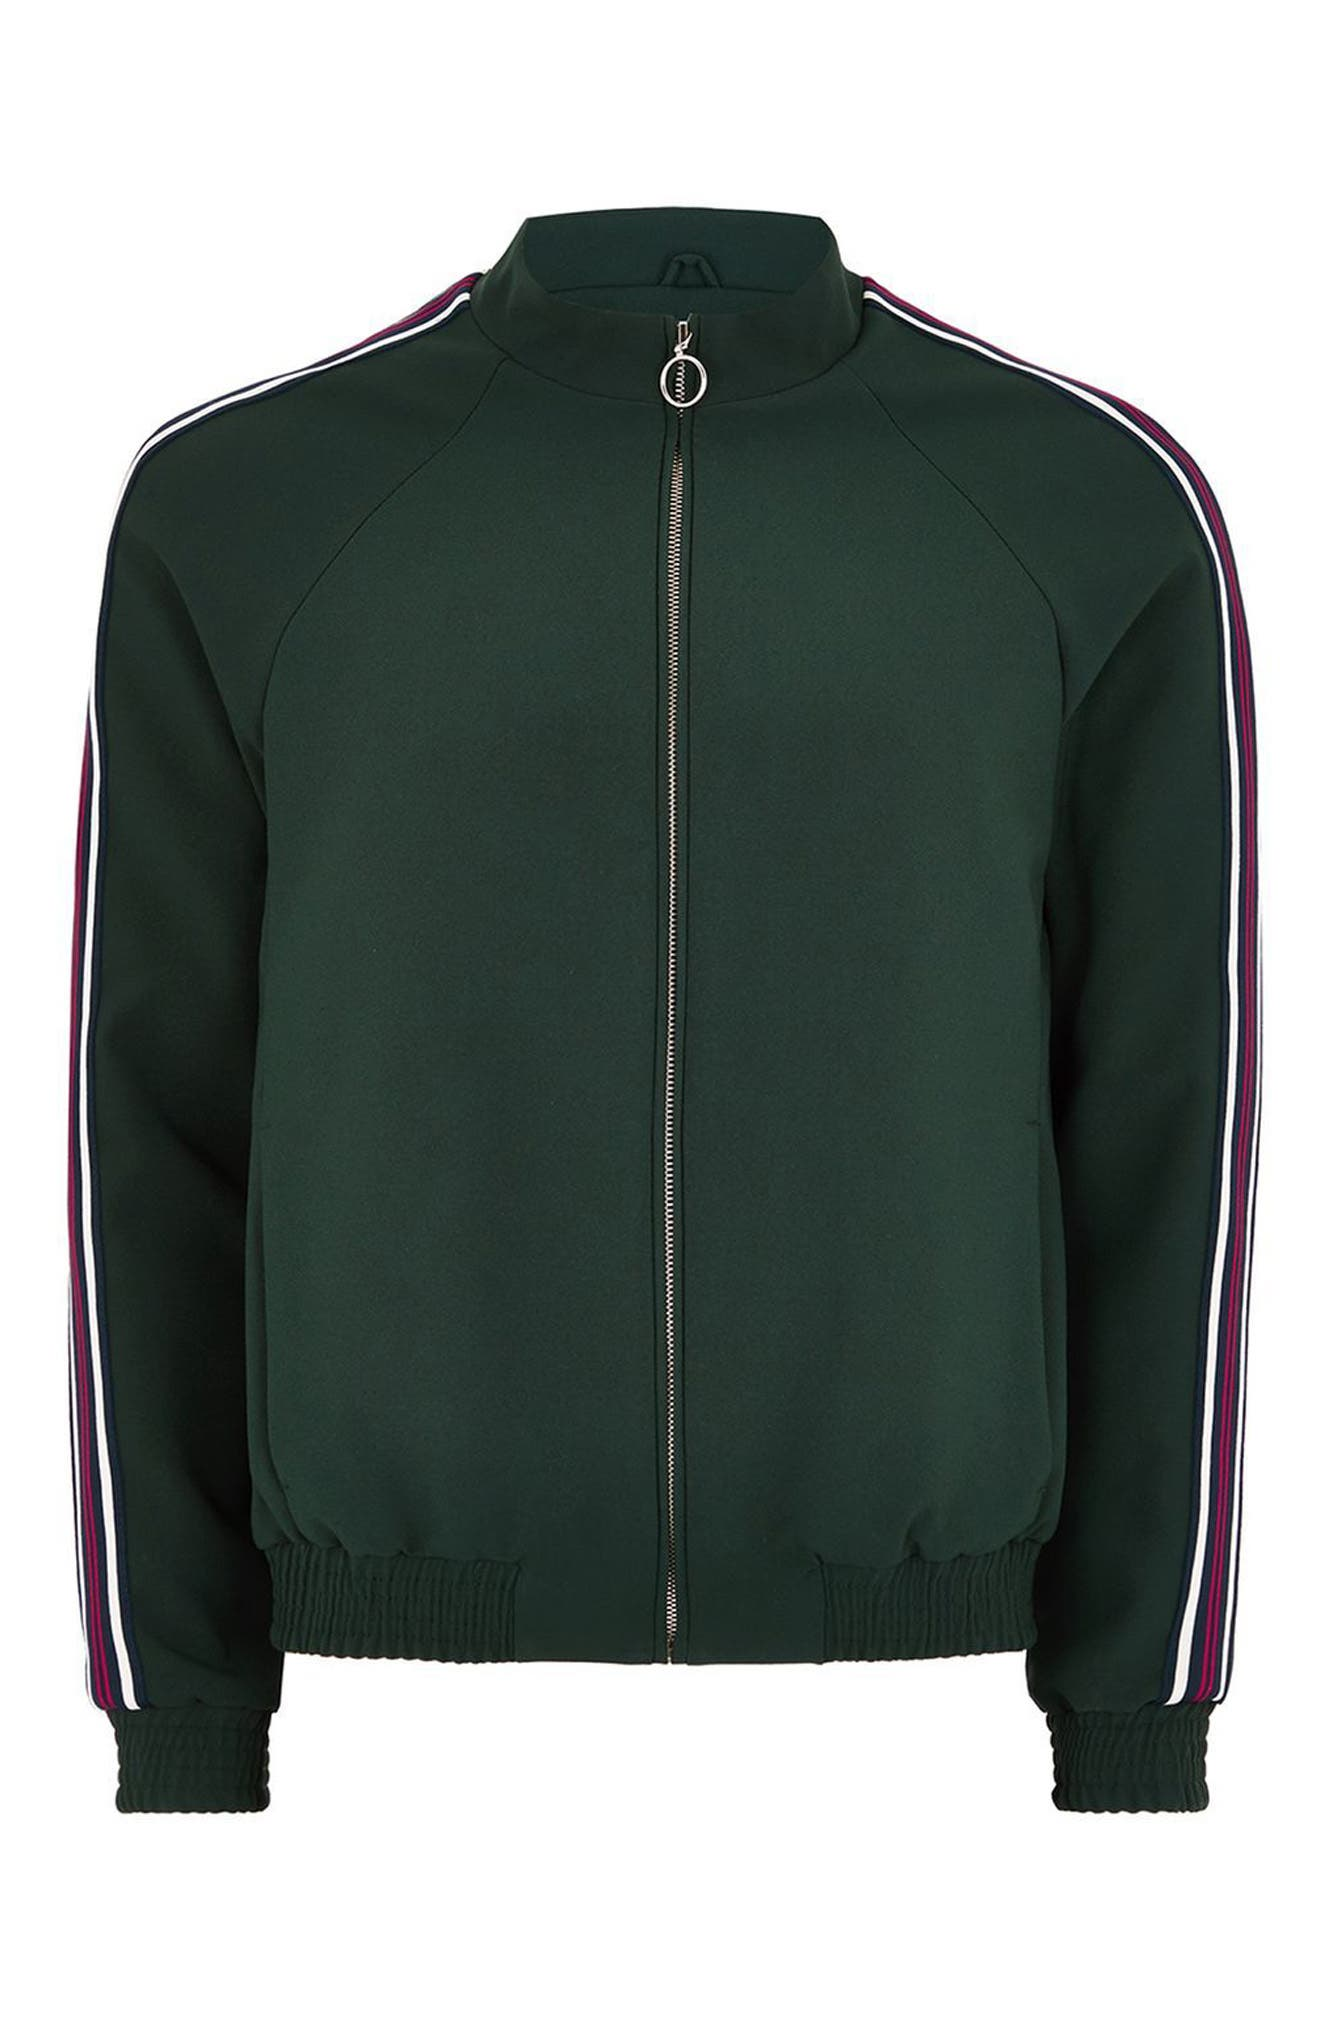 Track Jacket,                             Main thumbnail 1, color,                             Green Multi